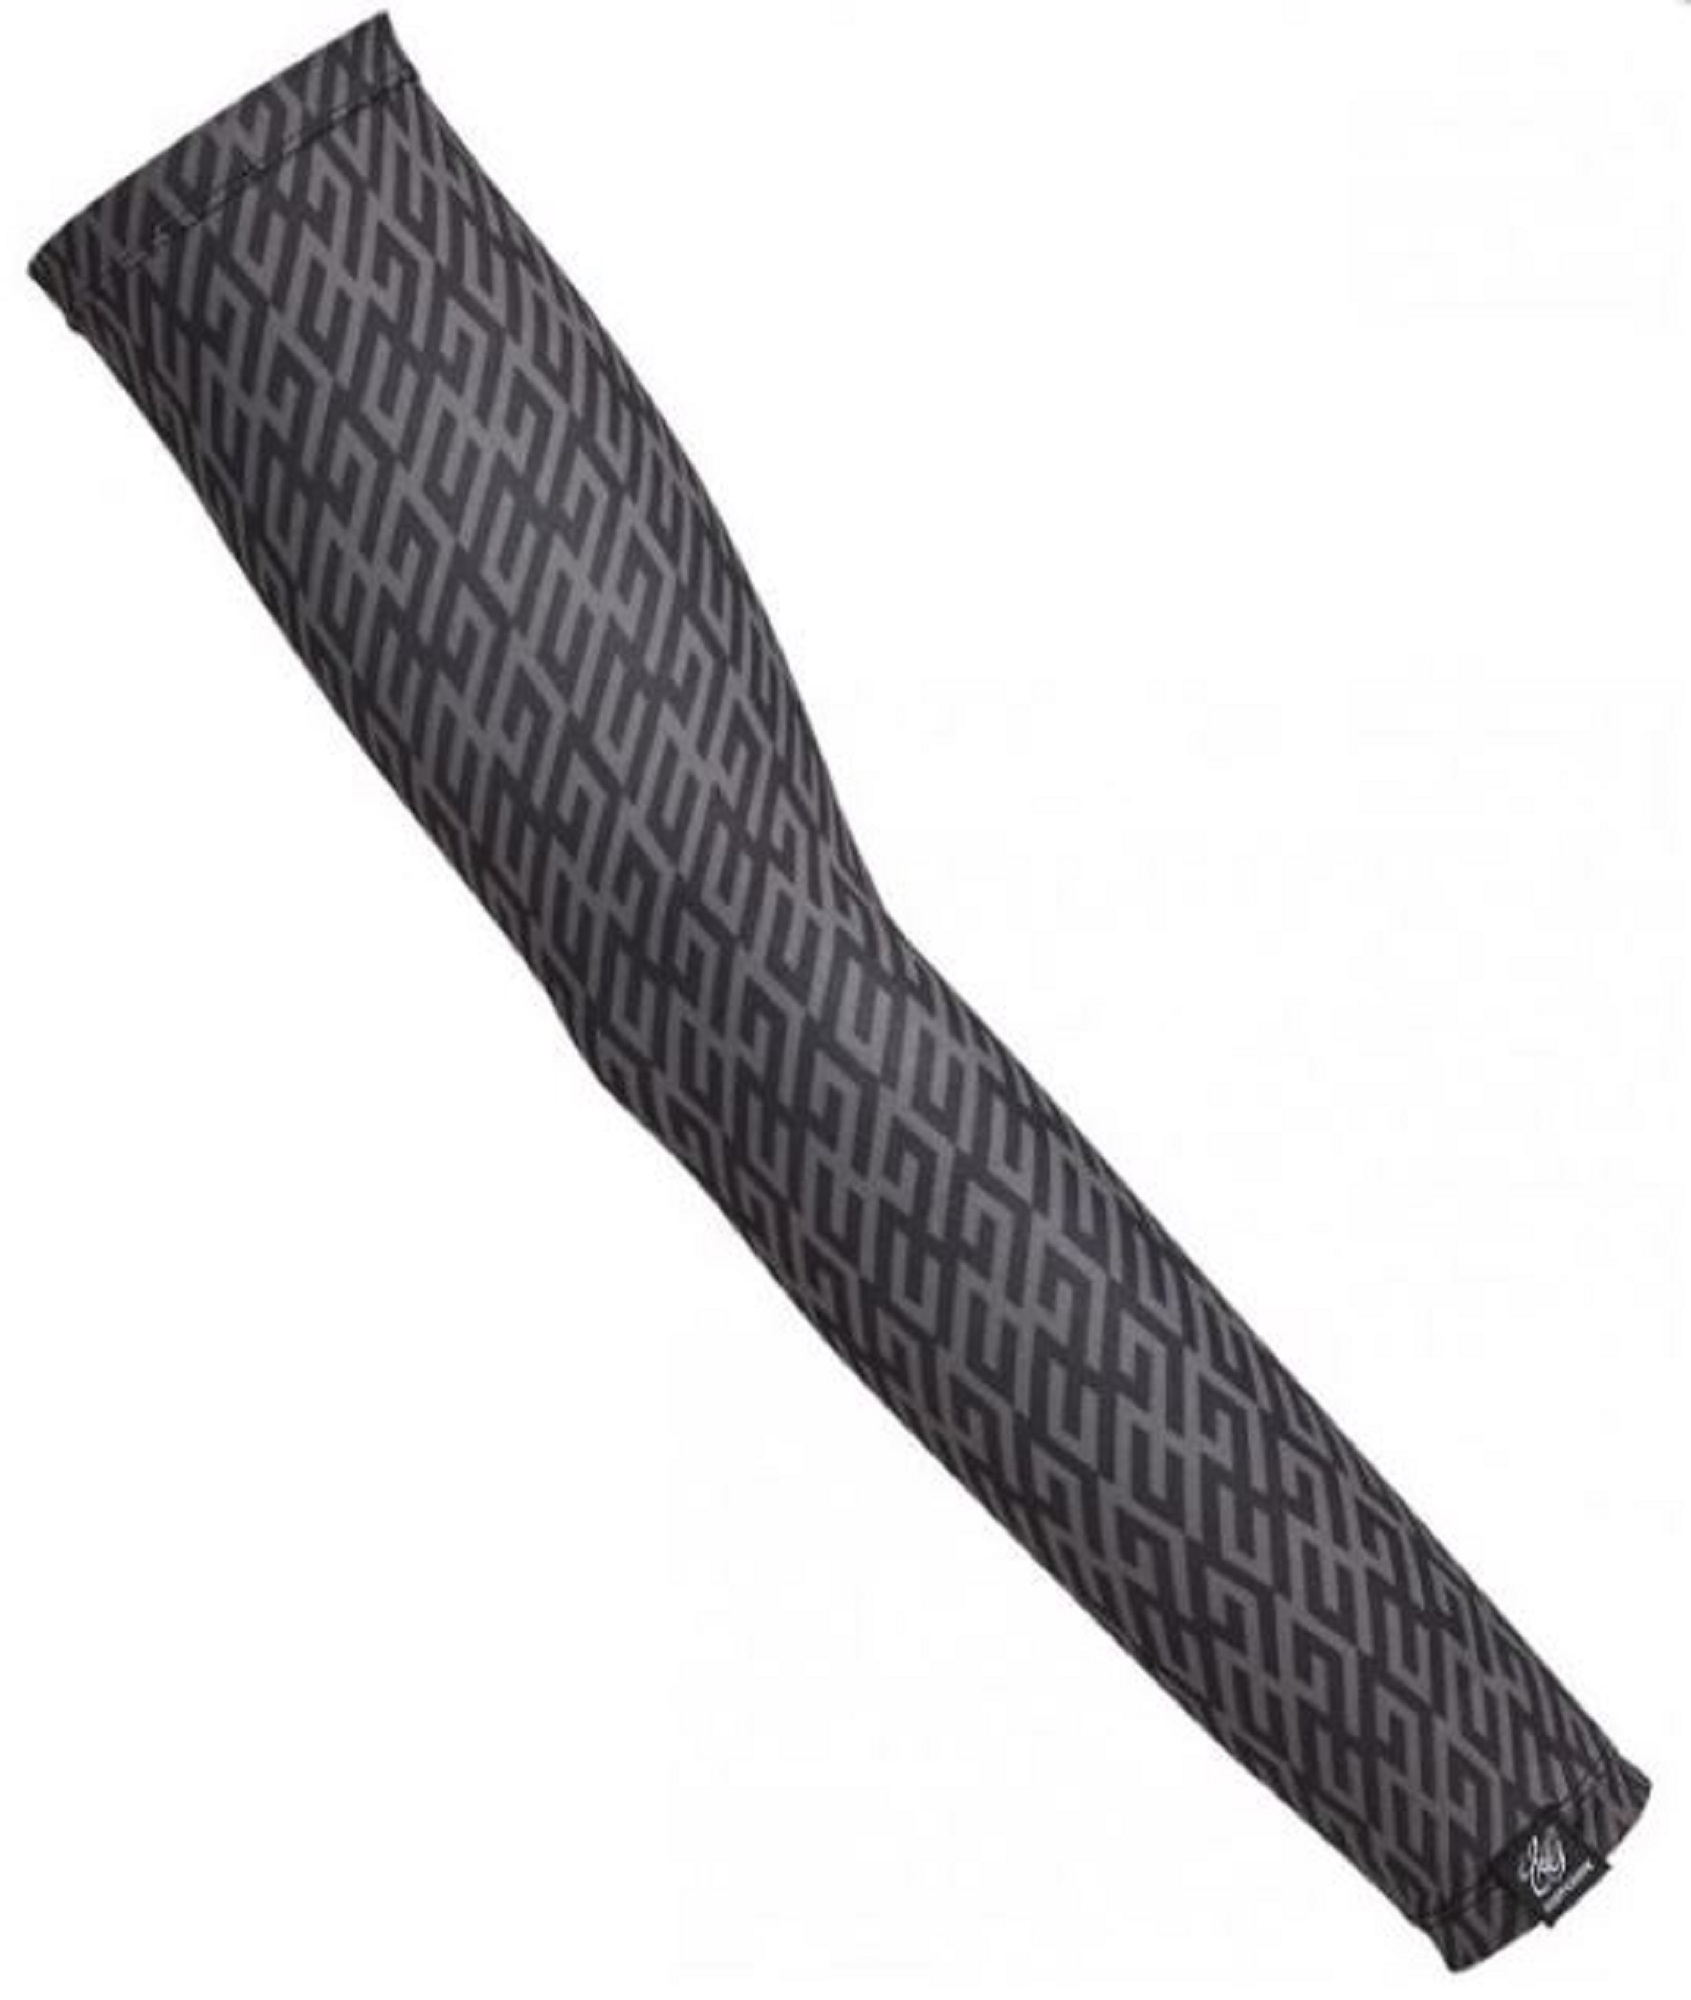 Evergreen Arm Sleeve Cover Size M EG Black (2186)